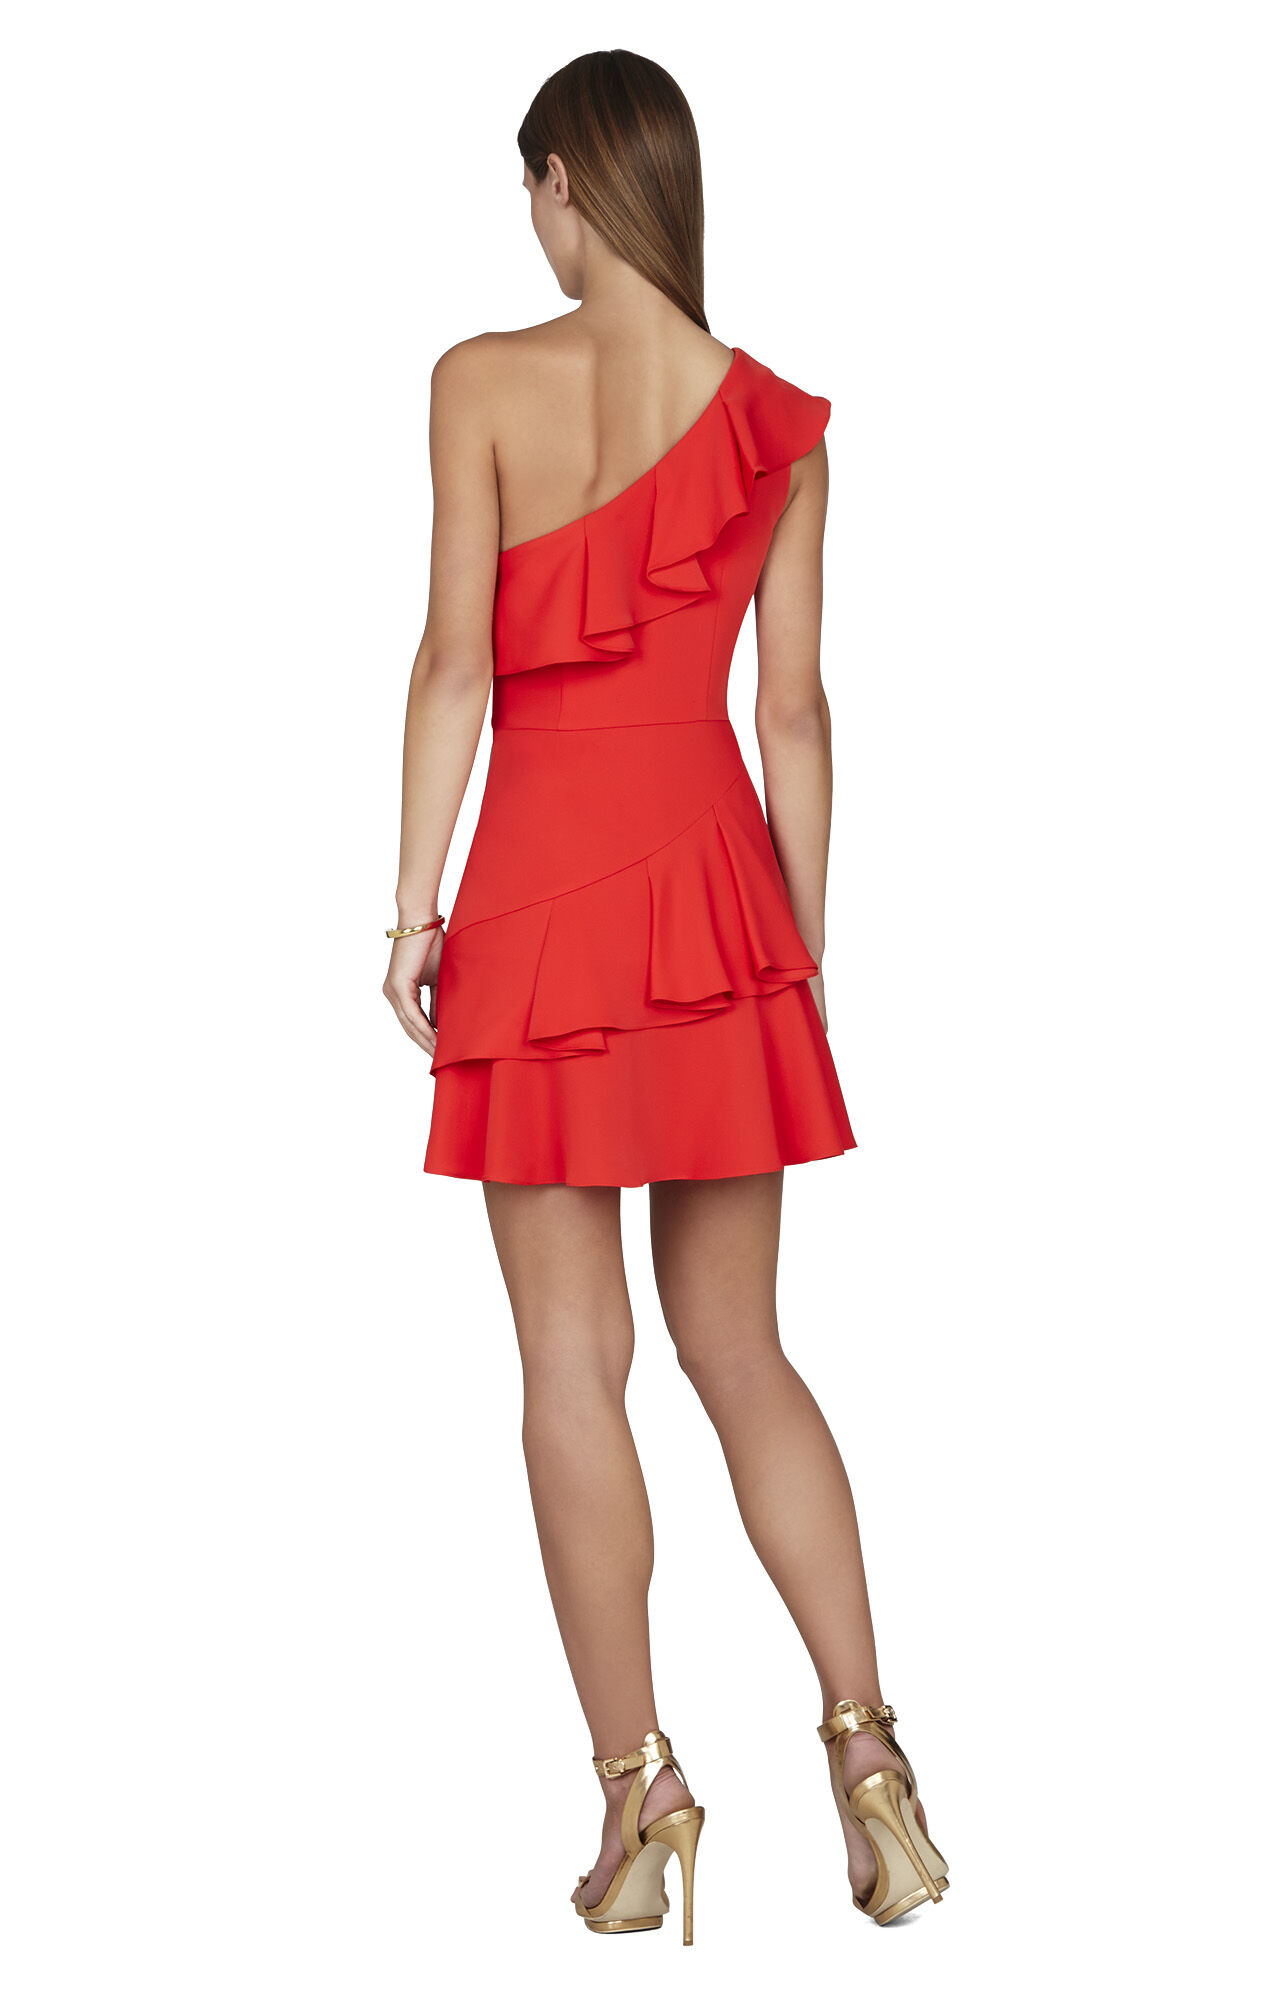 Calinda One-Shoulder Ruffle Dress